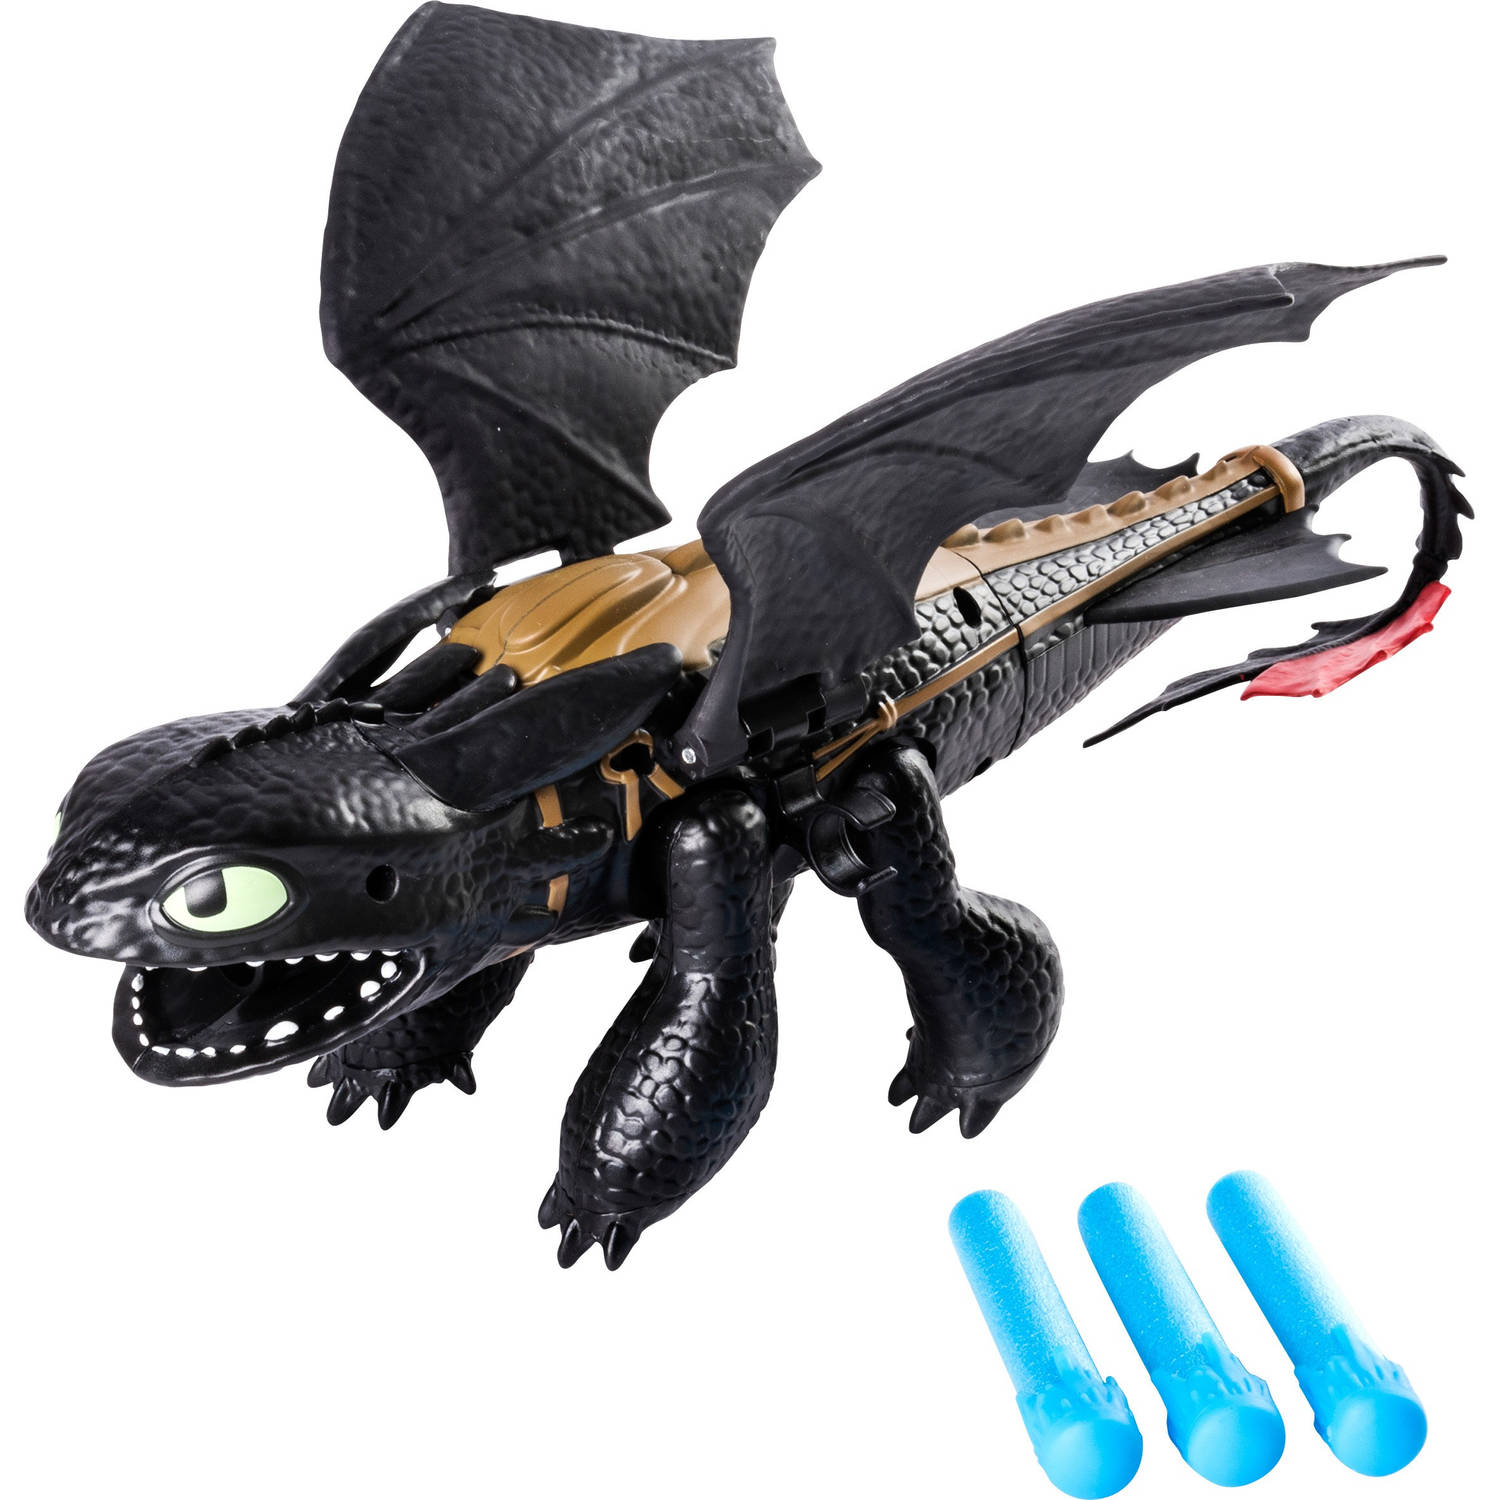 Dragons - Toothless dragon blaster